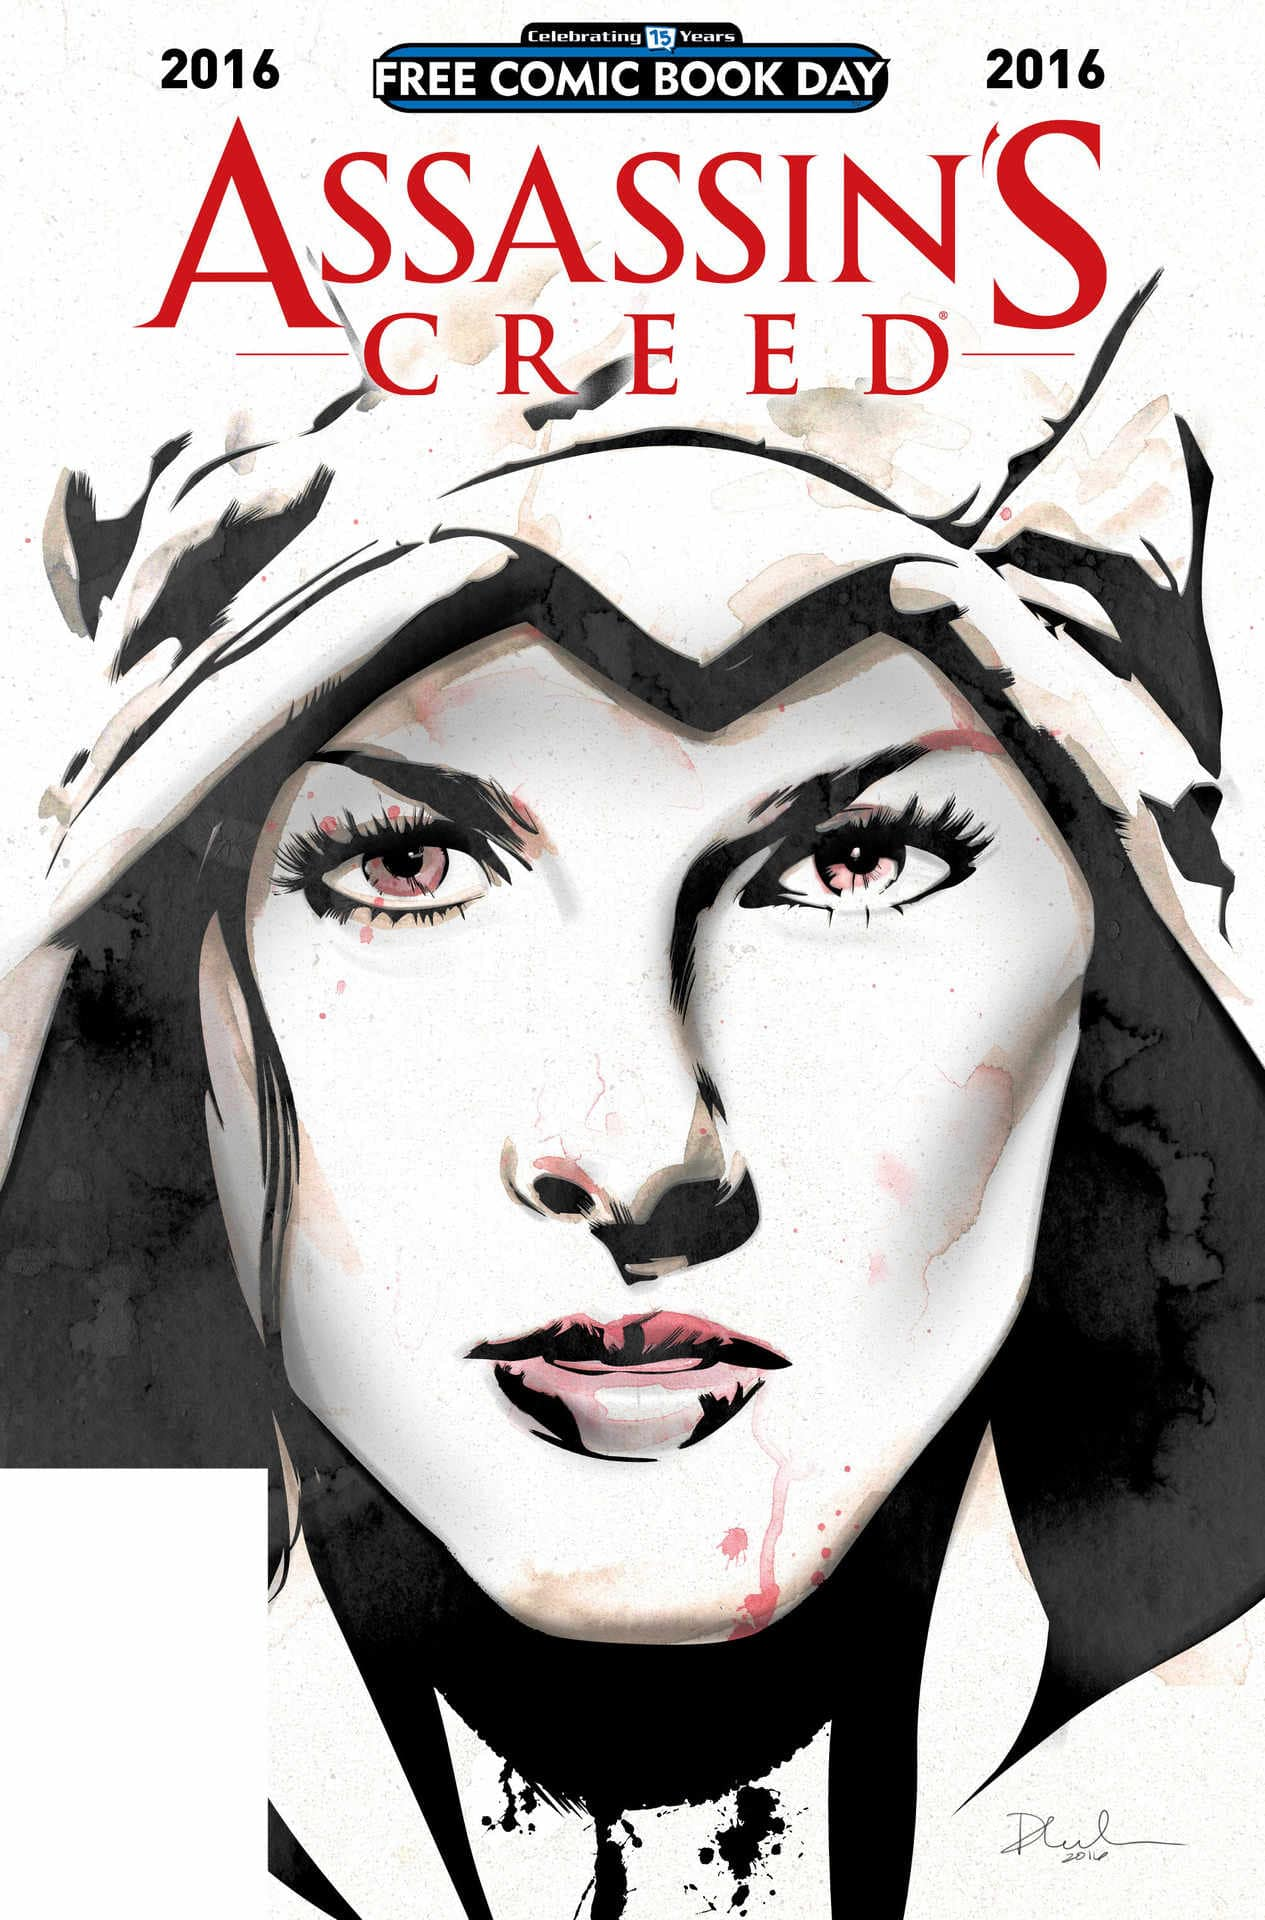 Assassin S Creed Fcbd 2016 Edition Assassin S Creed Wiki Fandom